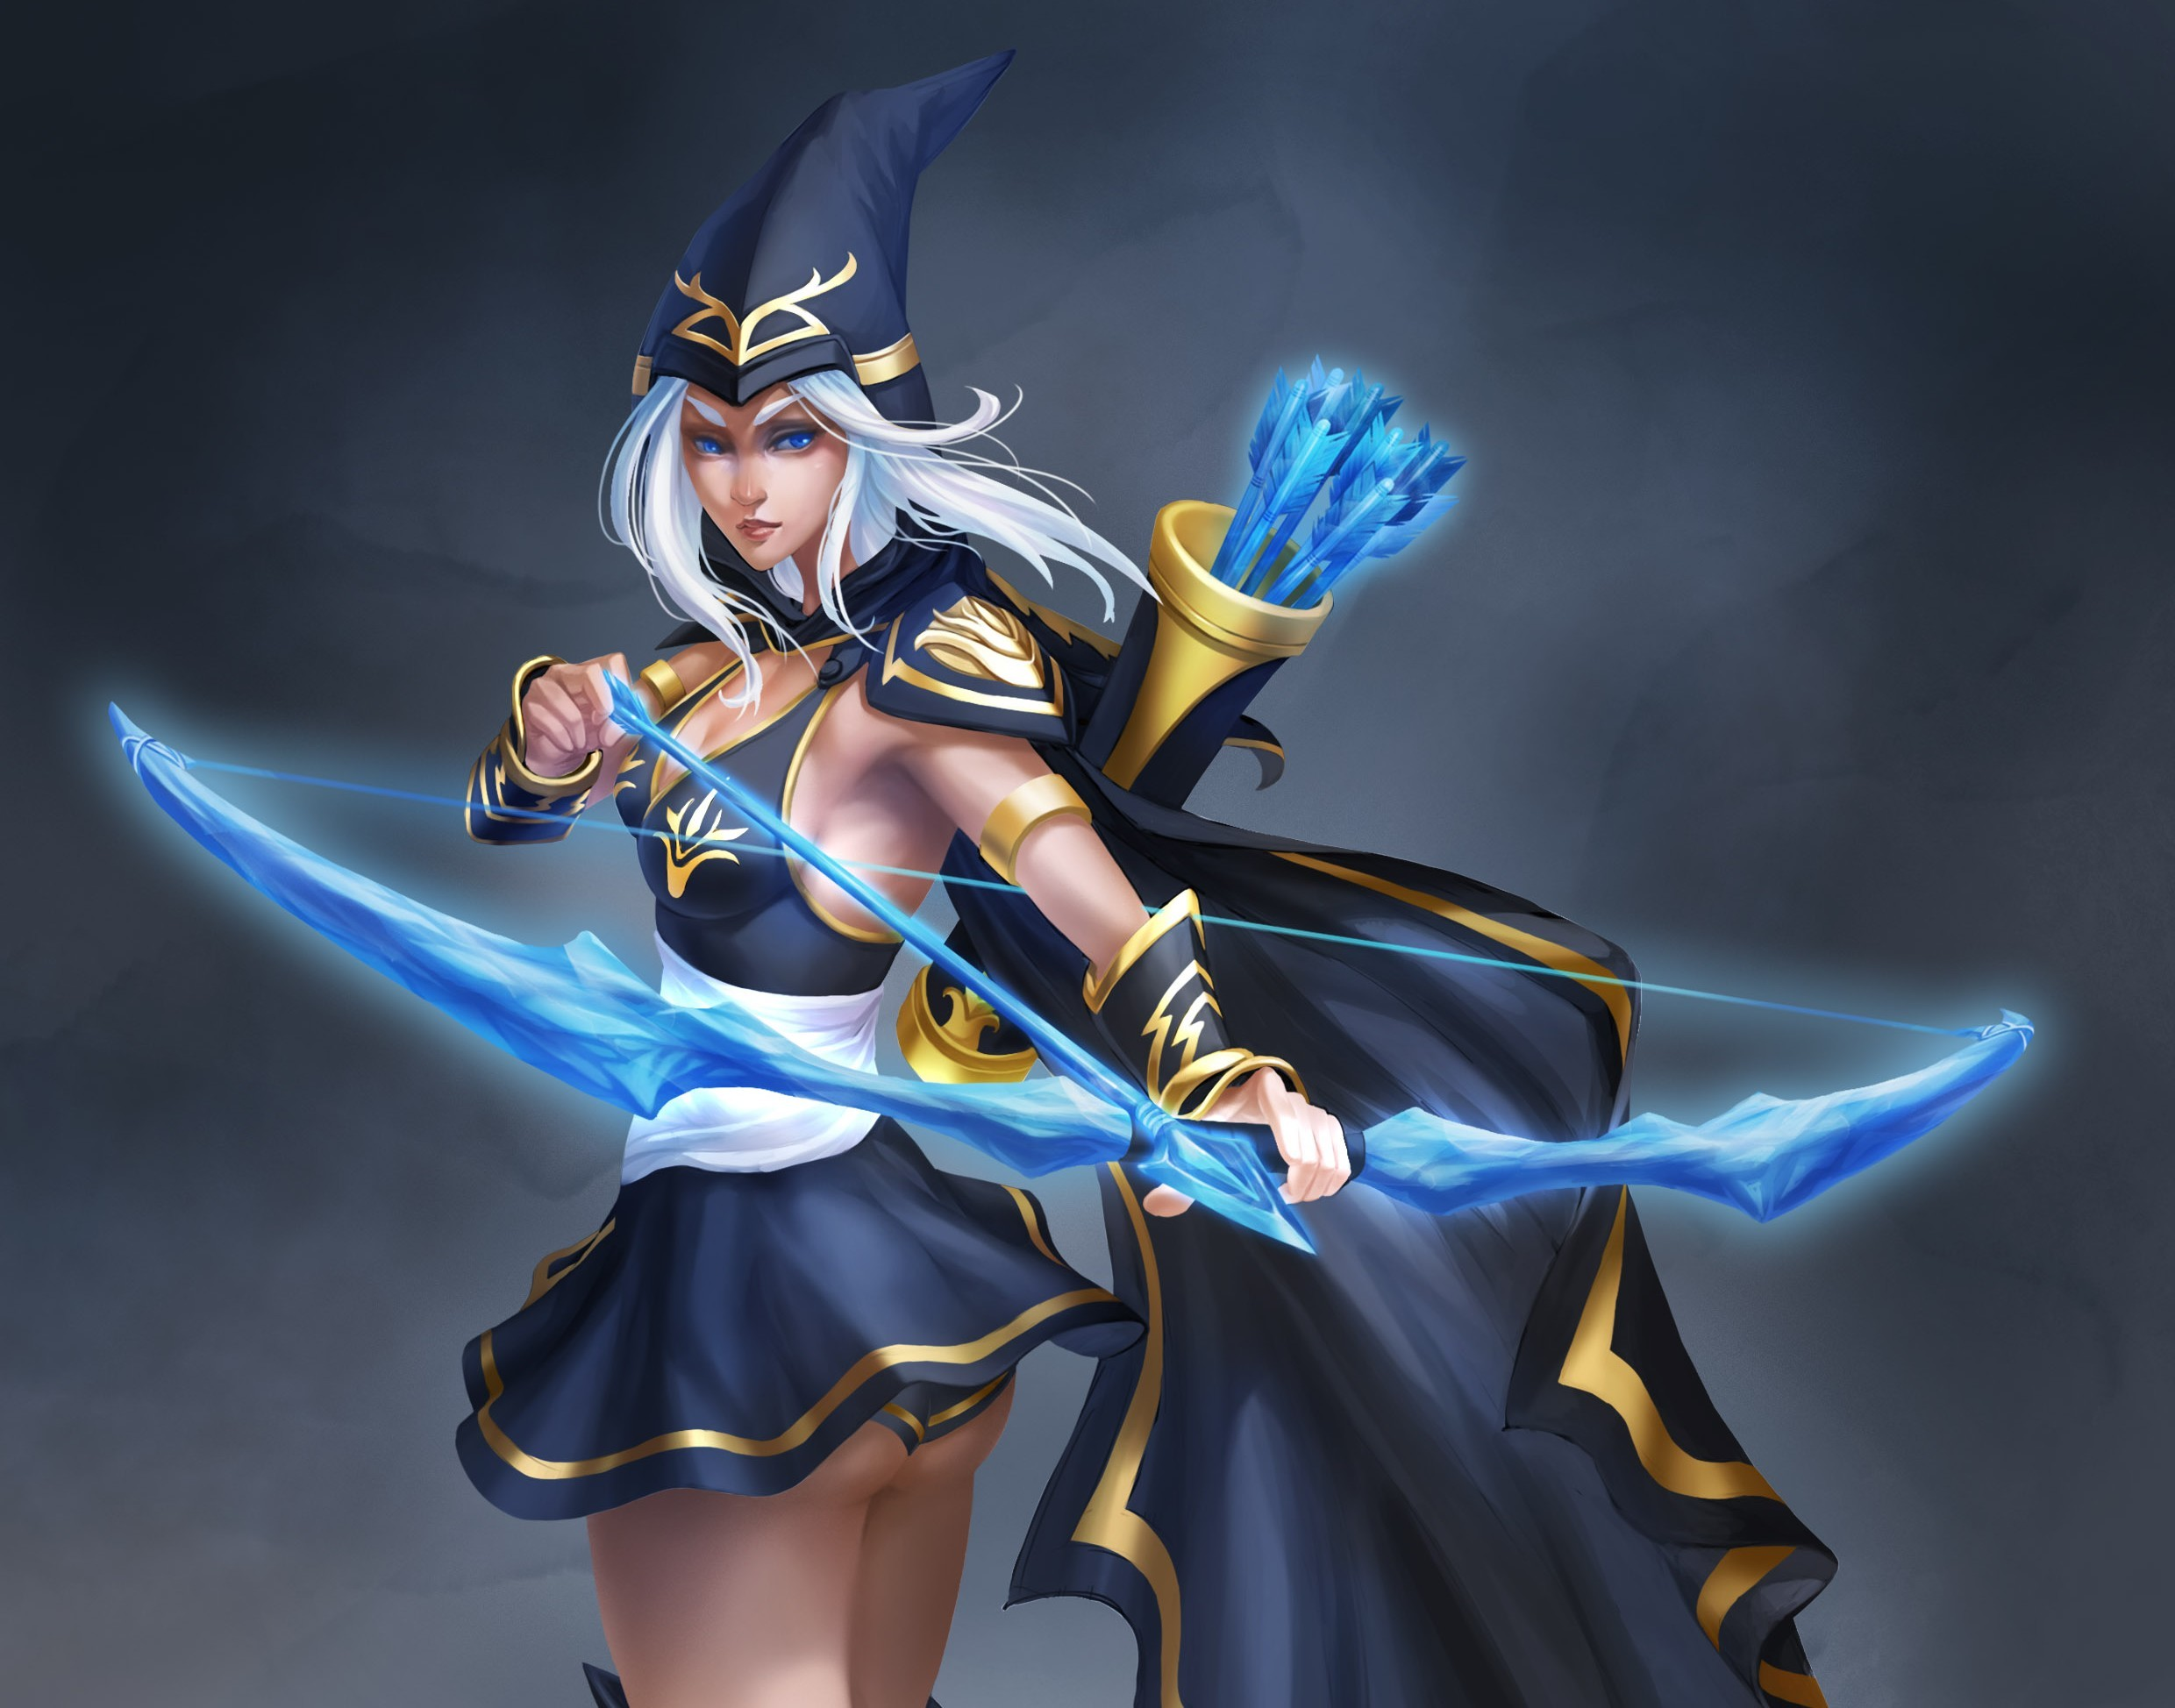 Sexy Ashe - LoLWallpapers